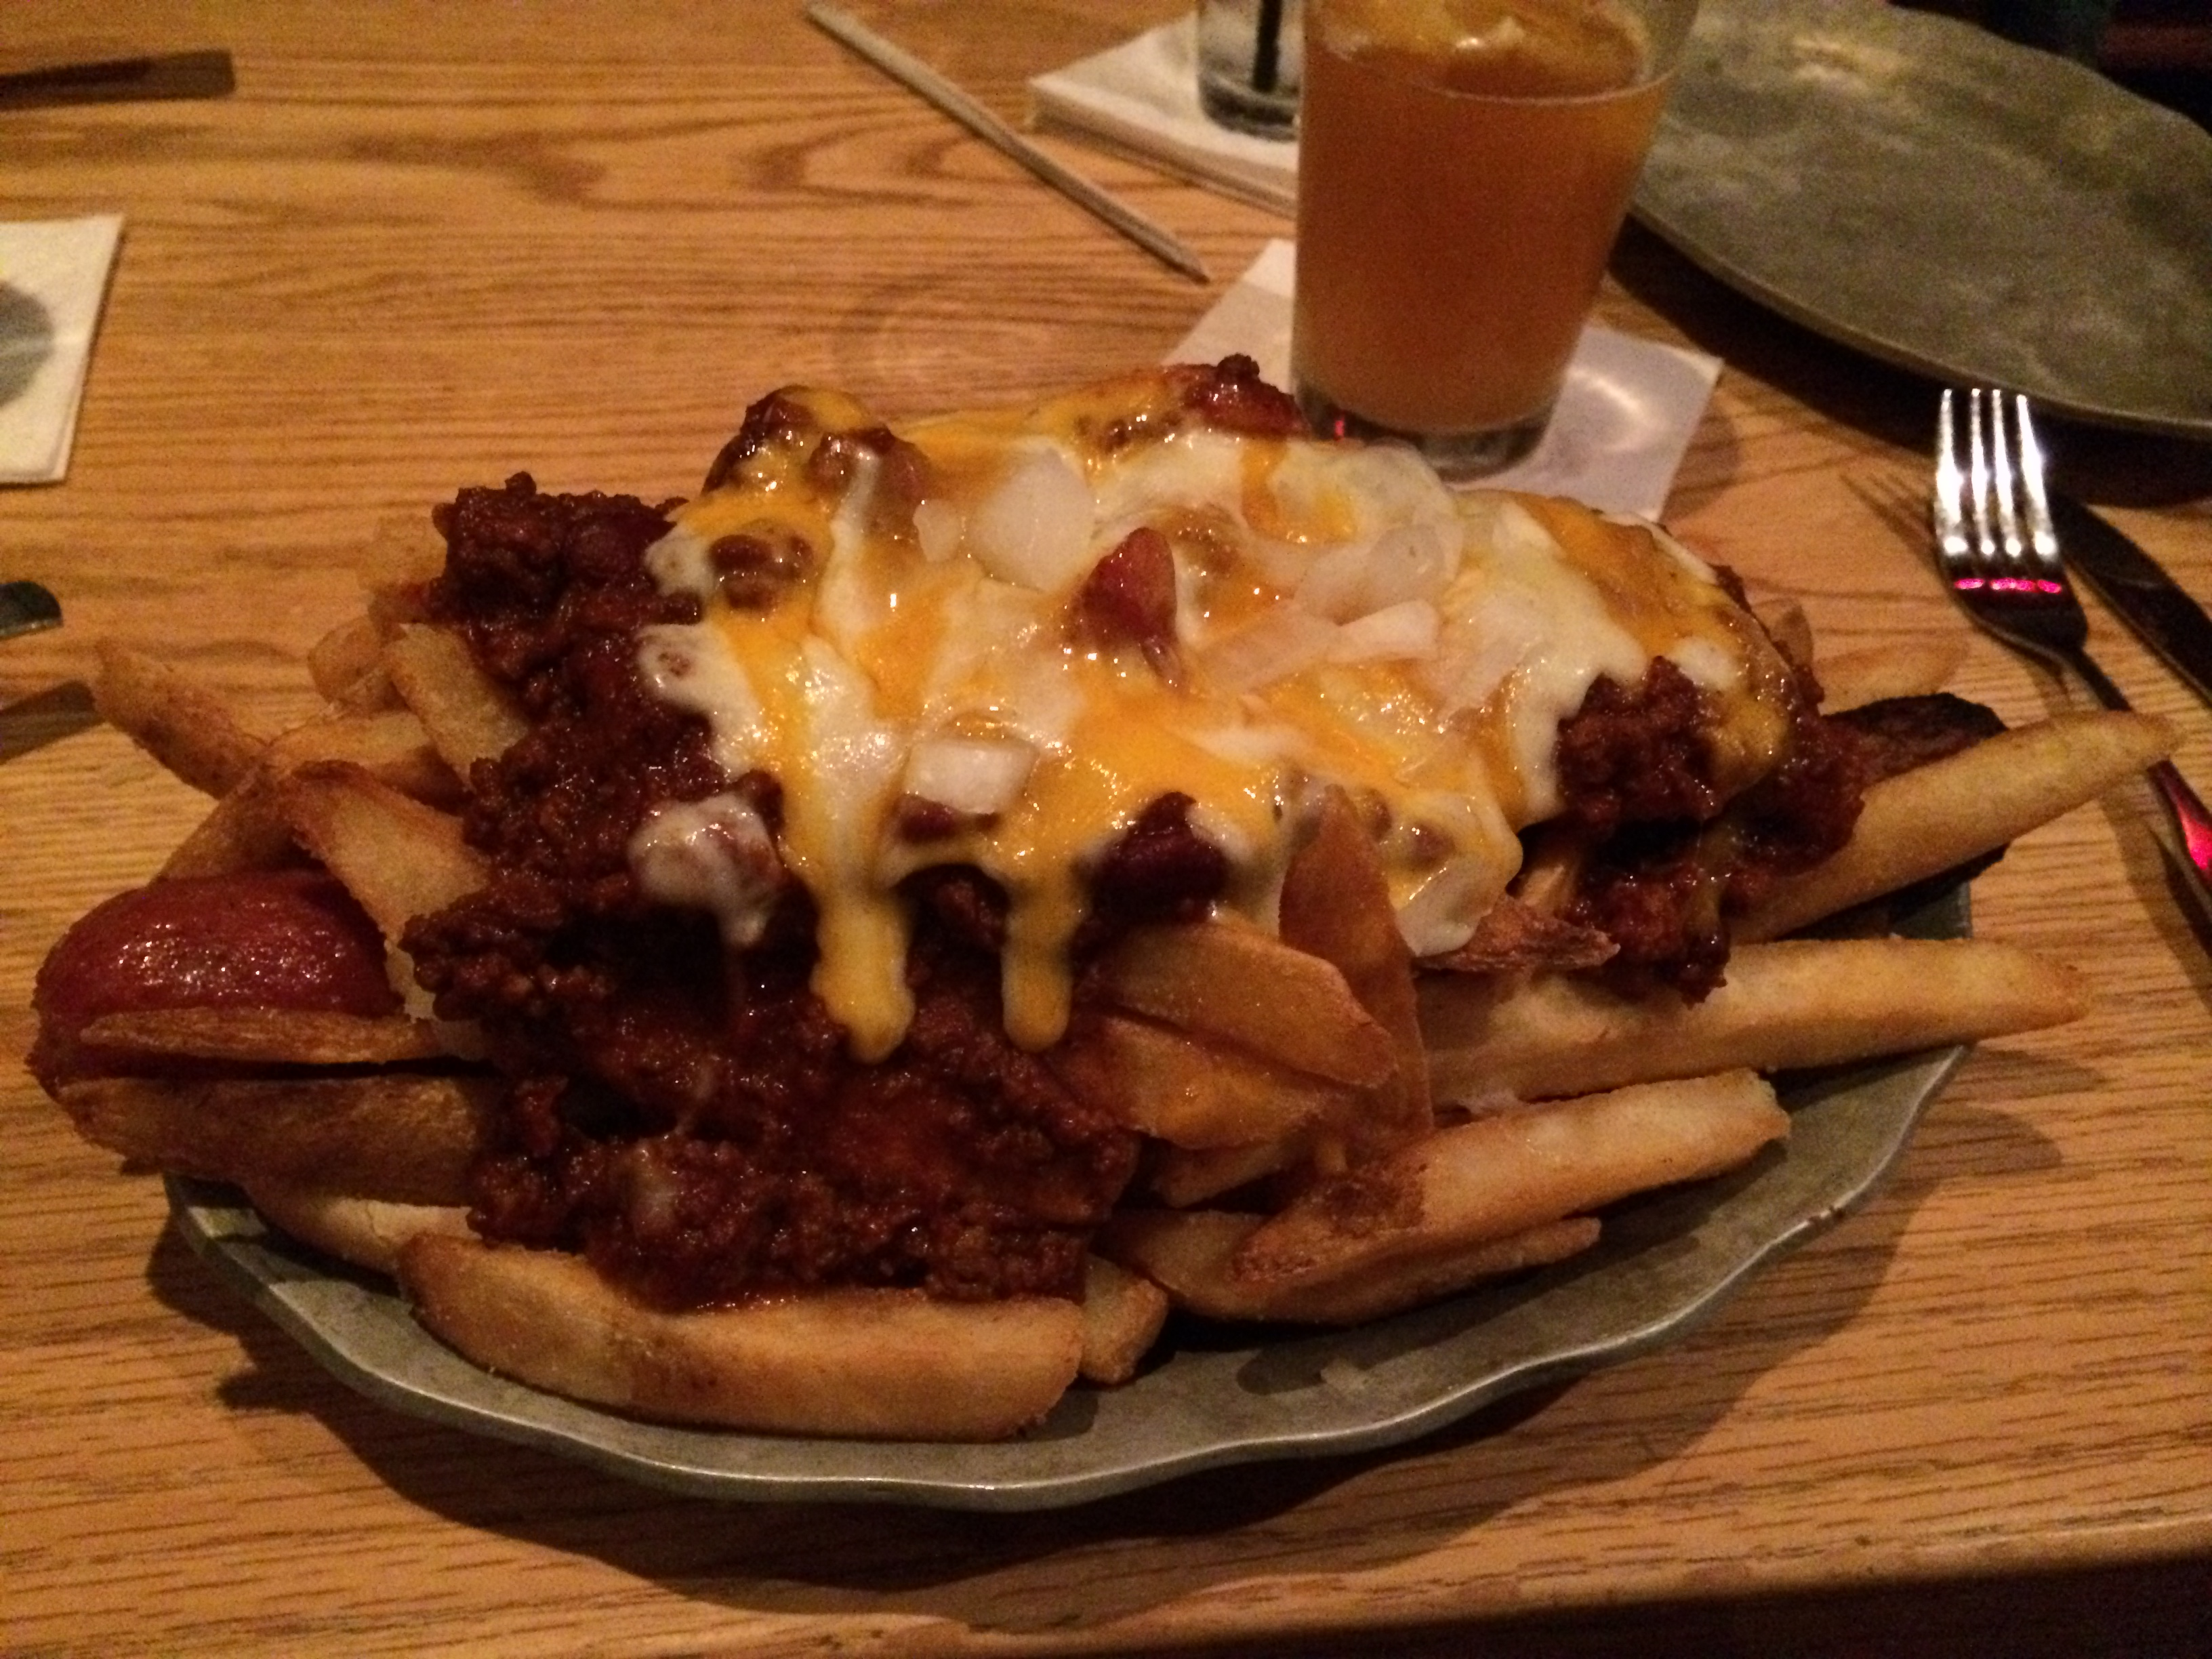 This was the Killer Dog I had at Carolina Roadhouse on Saturday.